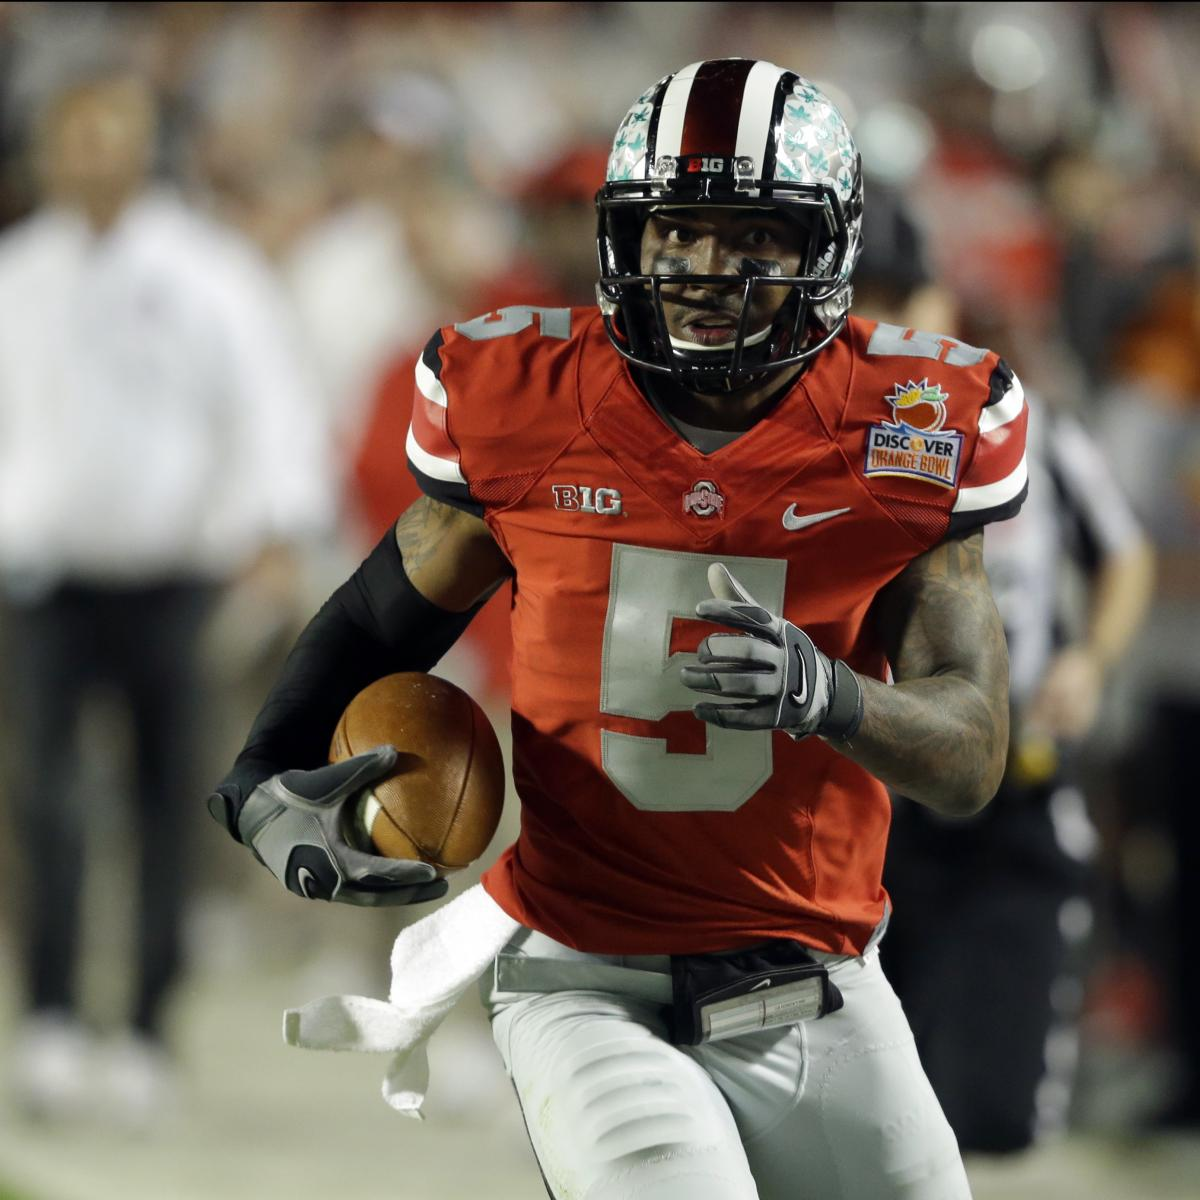 Braxton Miller Offers Intriguing Developmental QB Talent ...